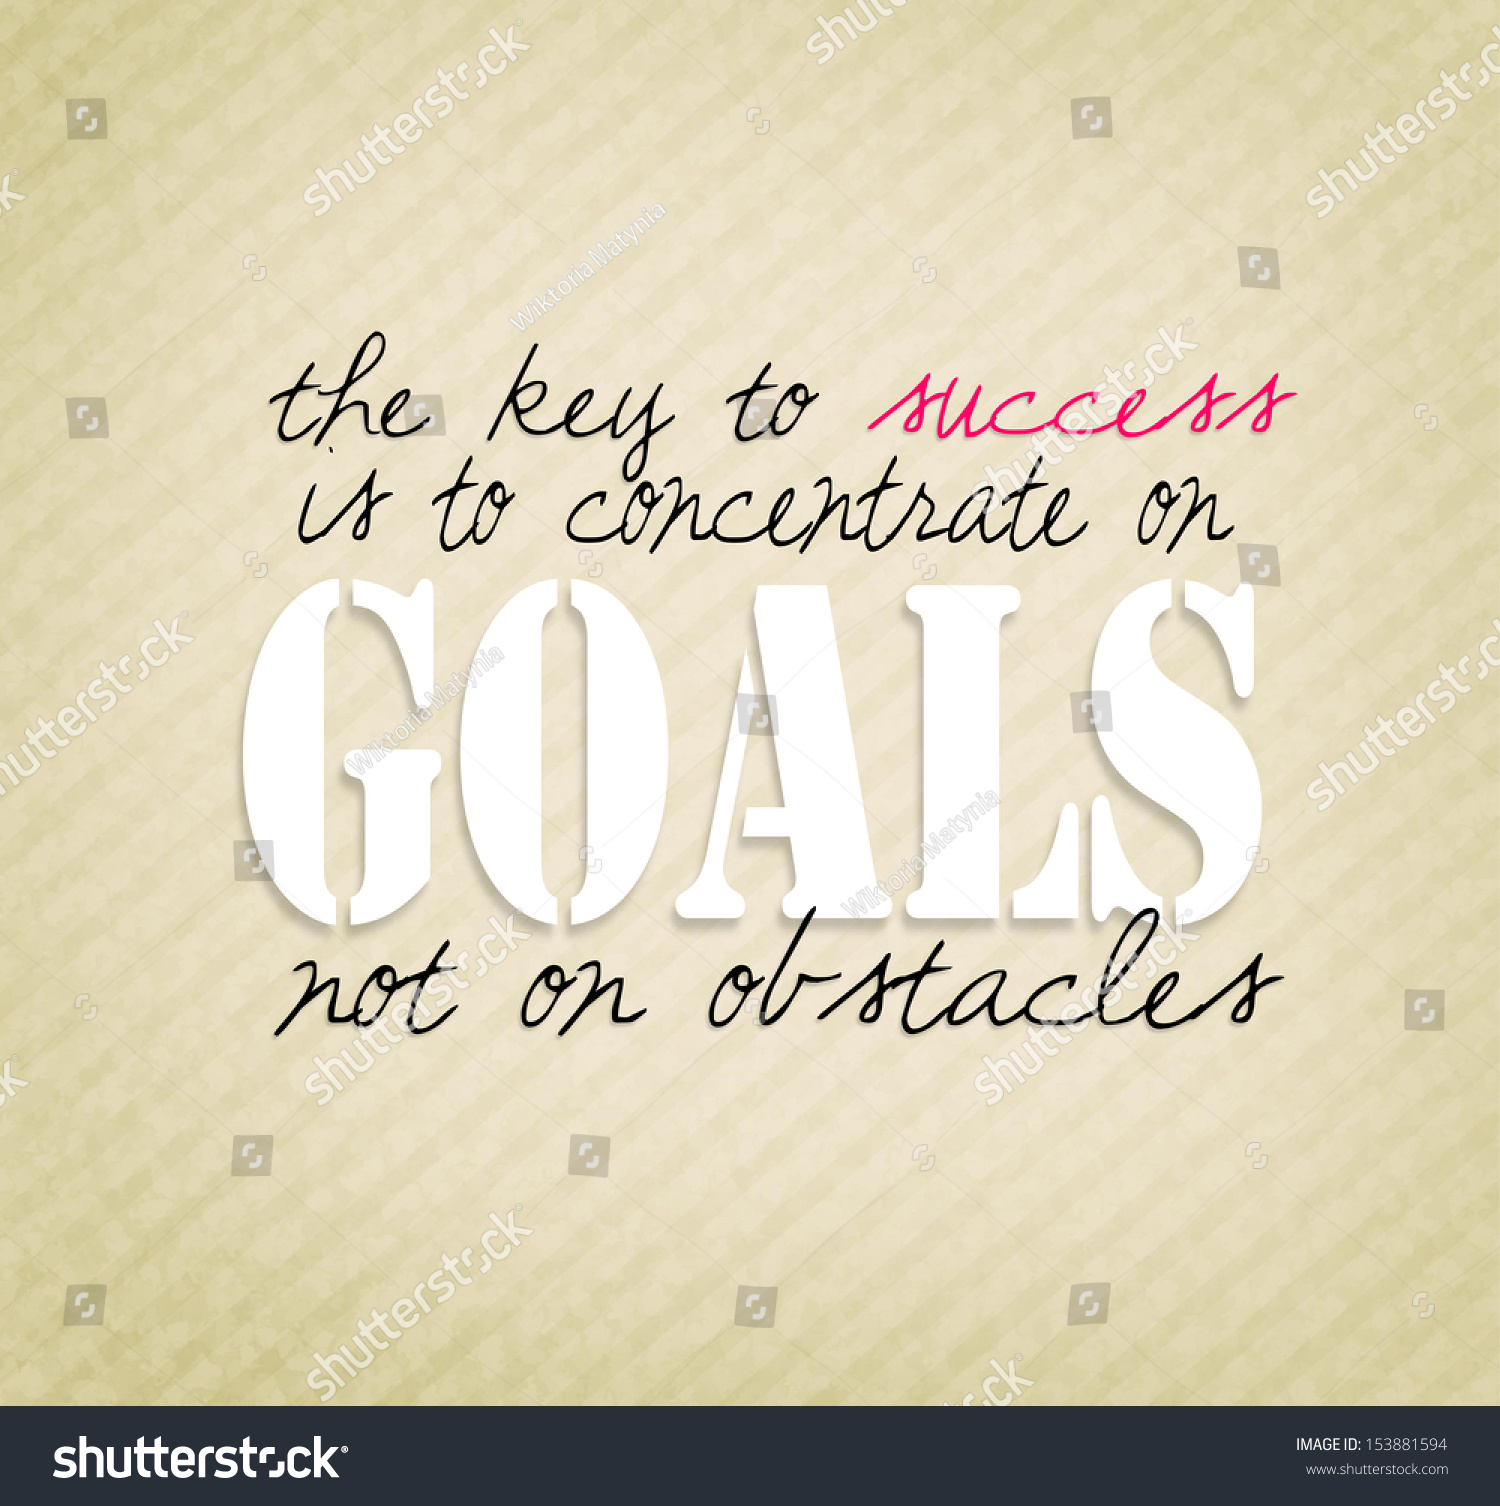 positive quote the key success concentrate stock illustration positive quote the key to success is to concentrate on goals not on obstacles